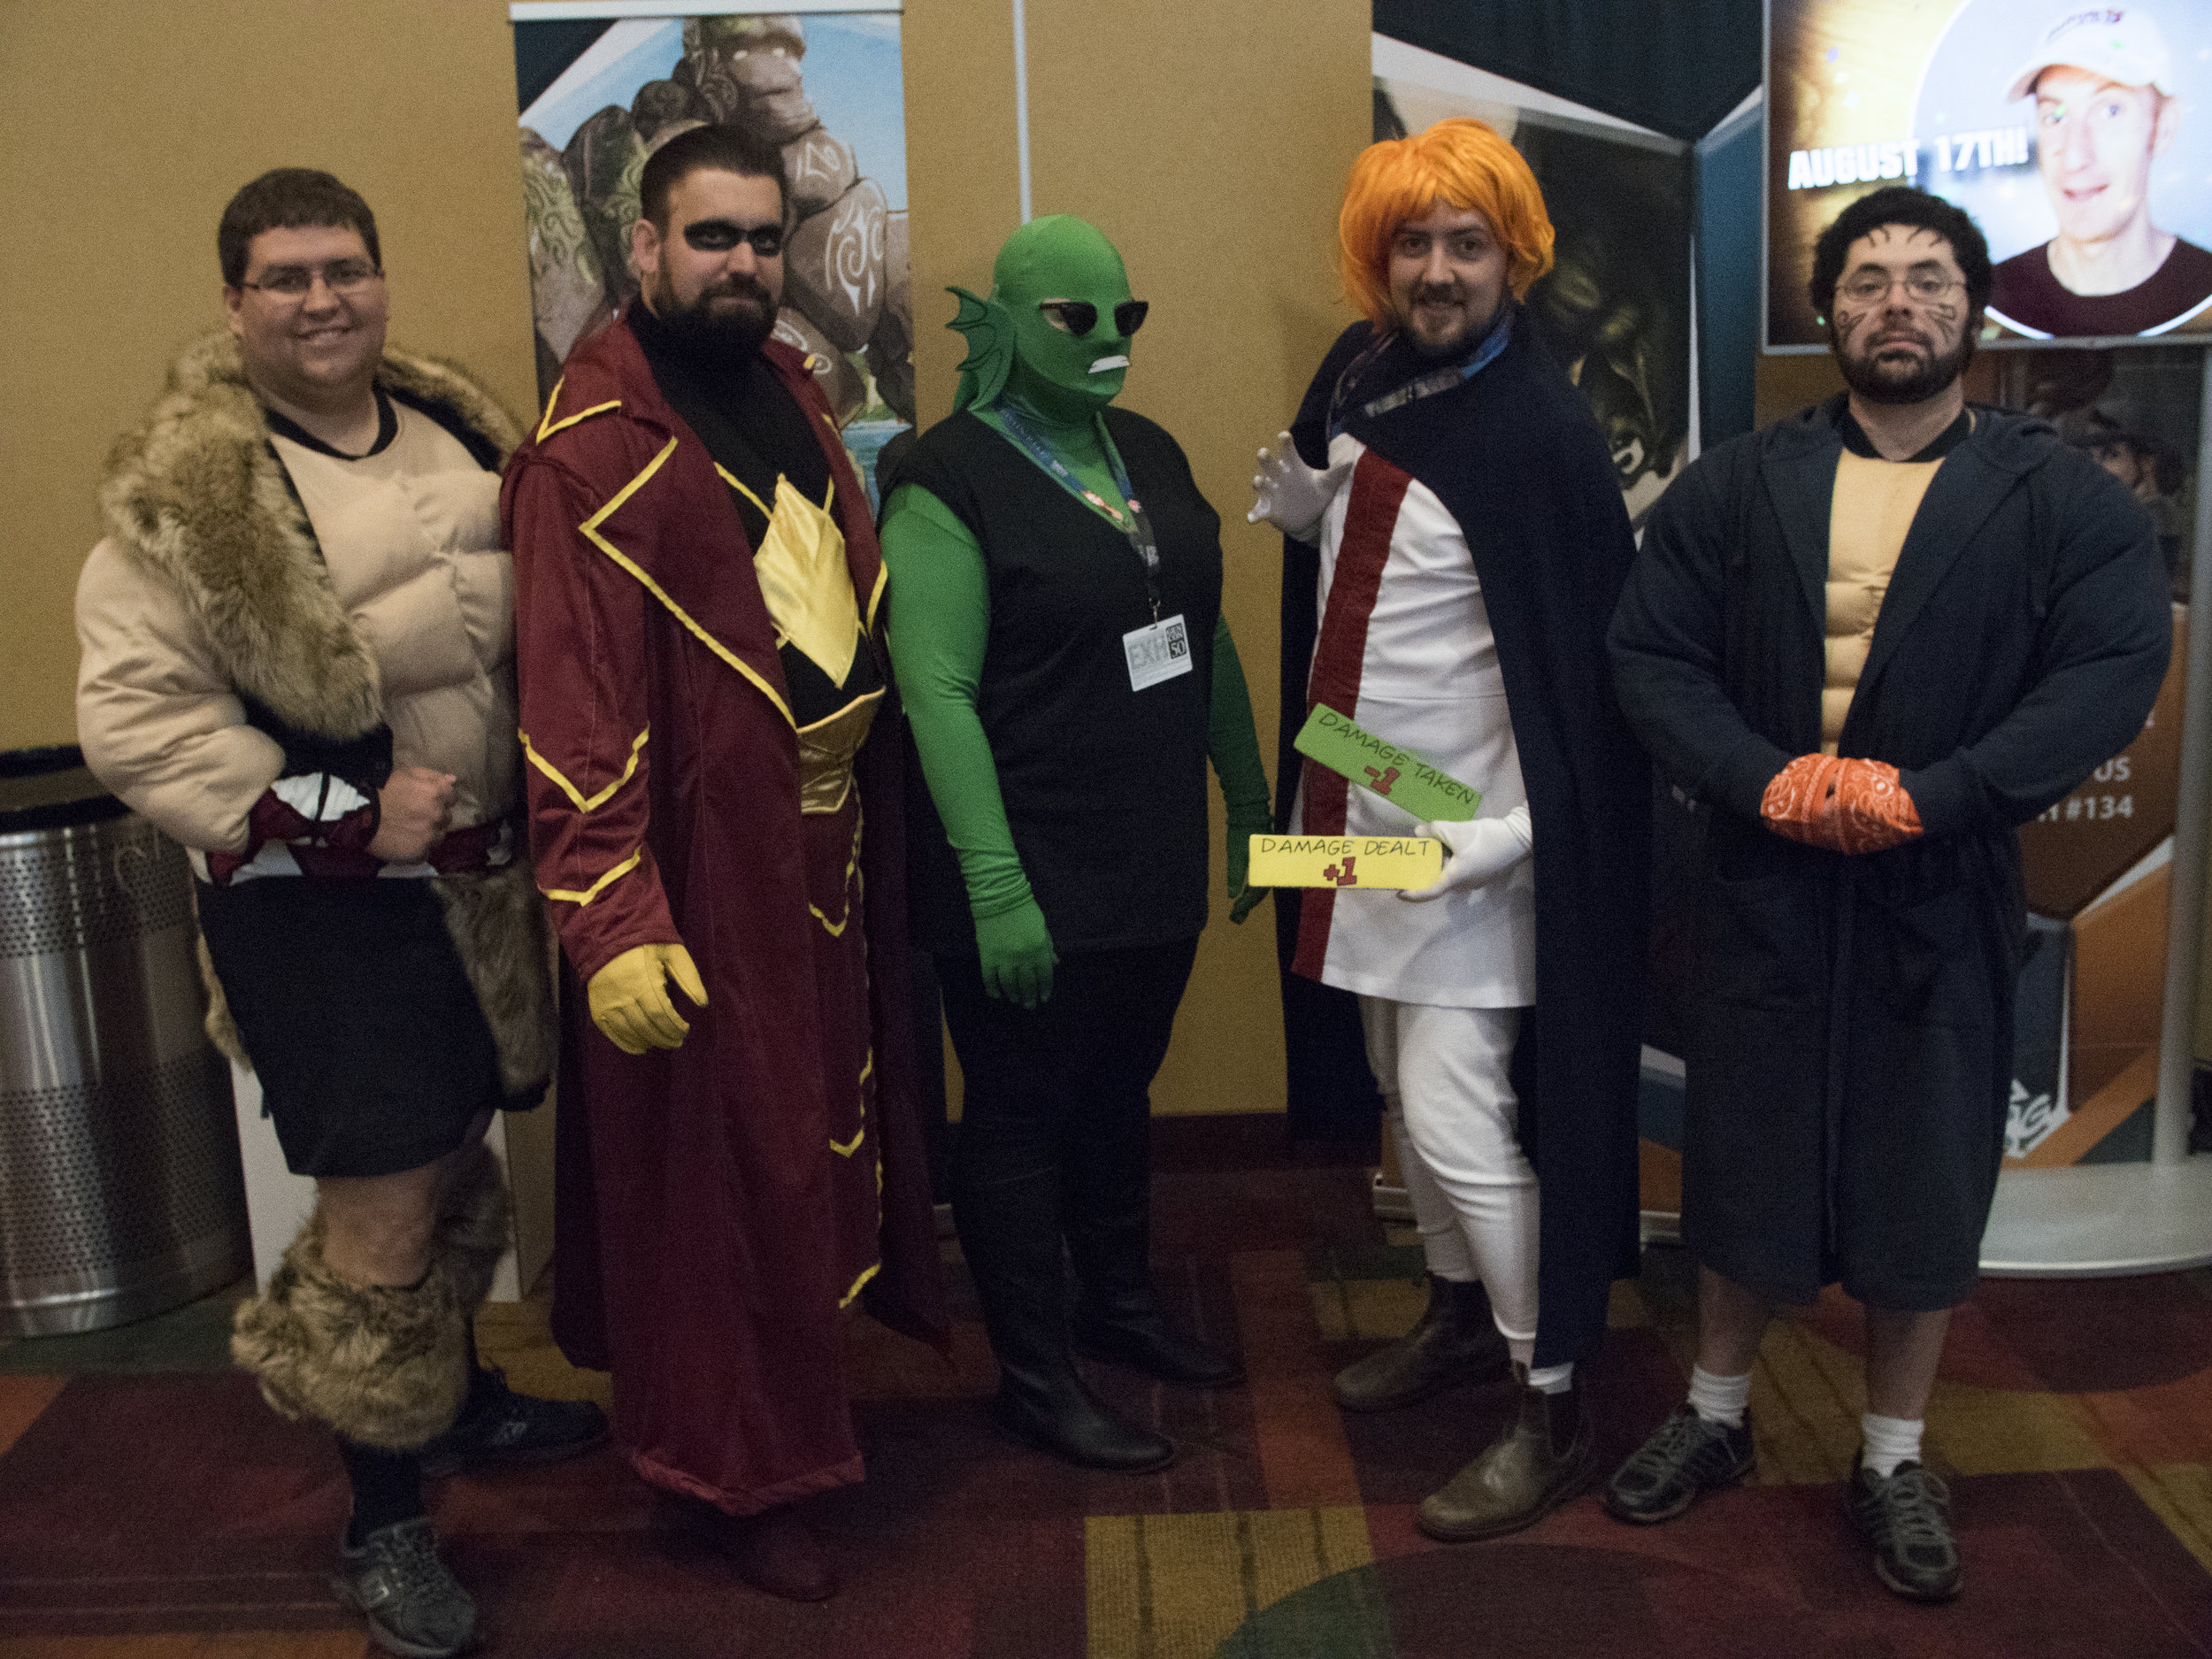 GenCon 2017 - Haka, Prime Wardens Captain Cosmic, Xtreme Prime Wardens Tempest, The Argent Adept, and The Eternal Haka